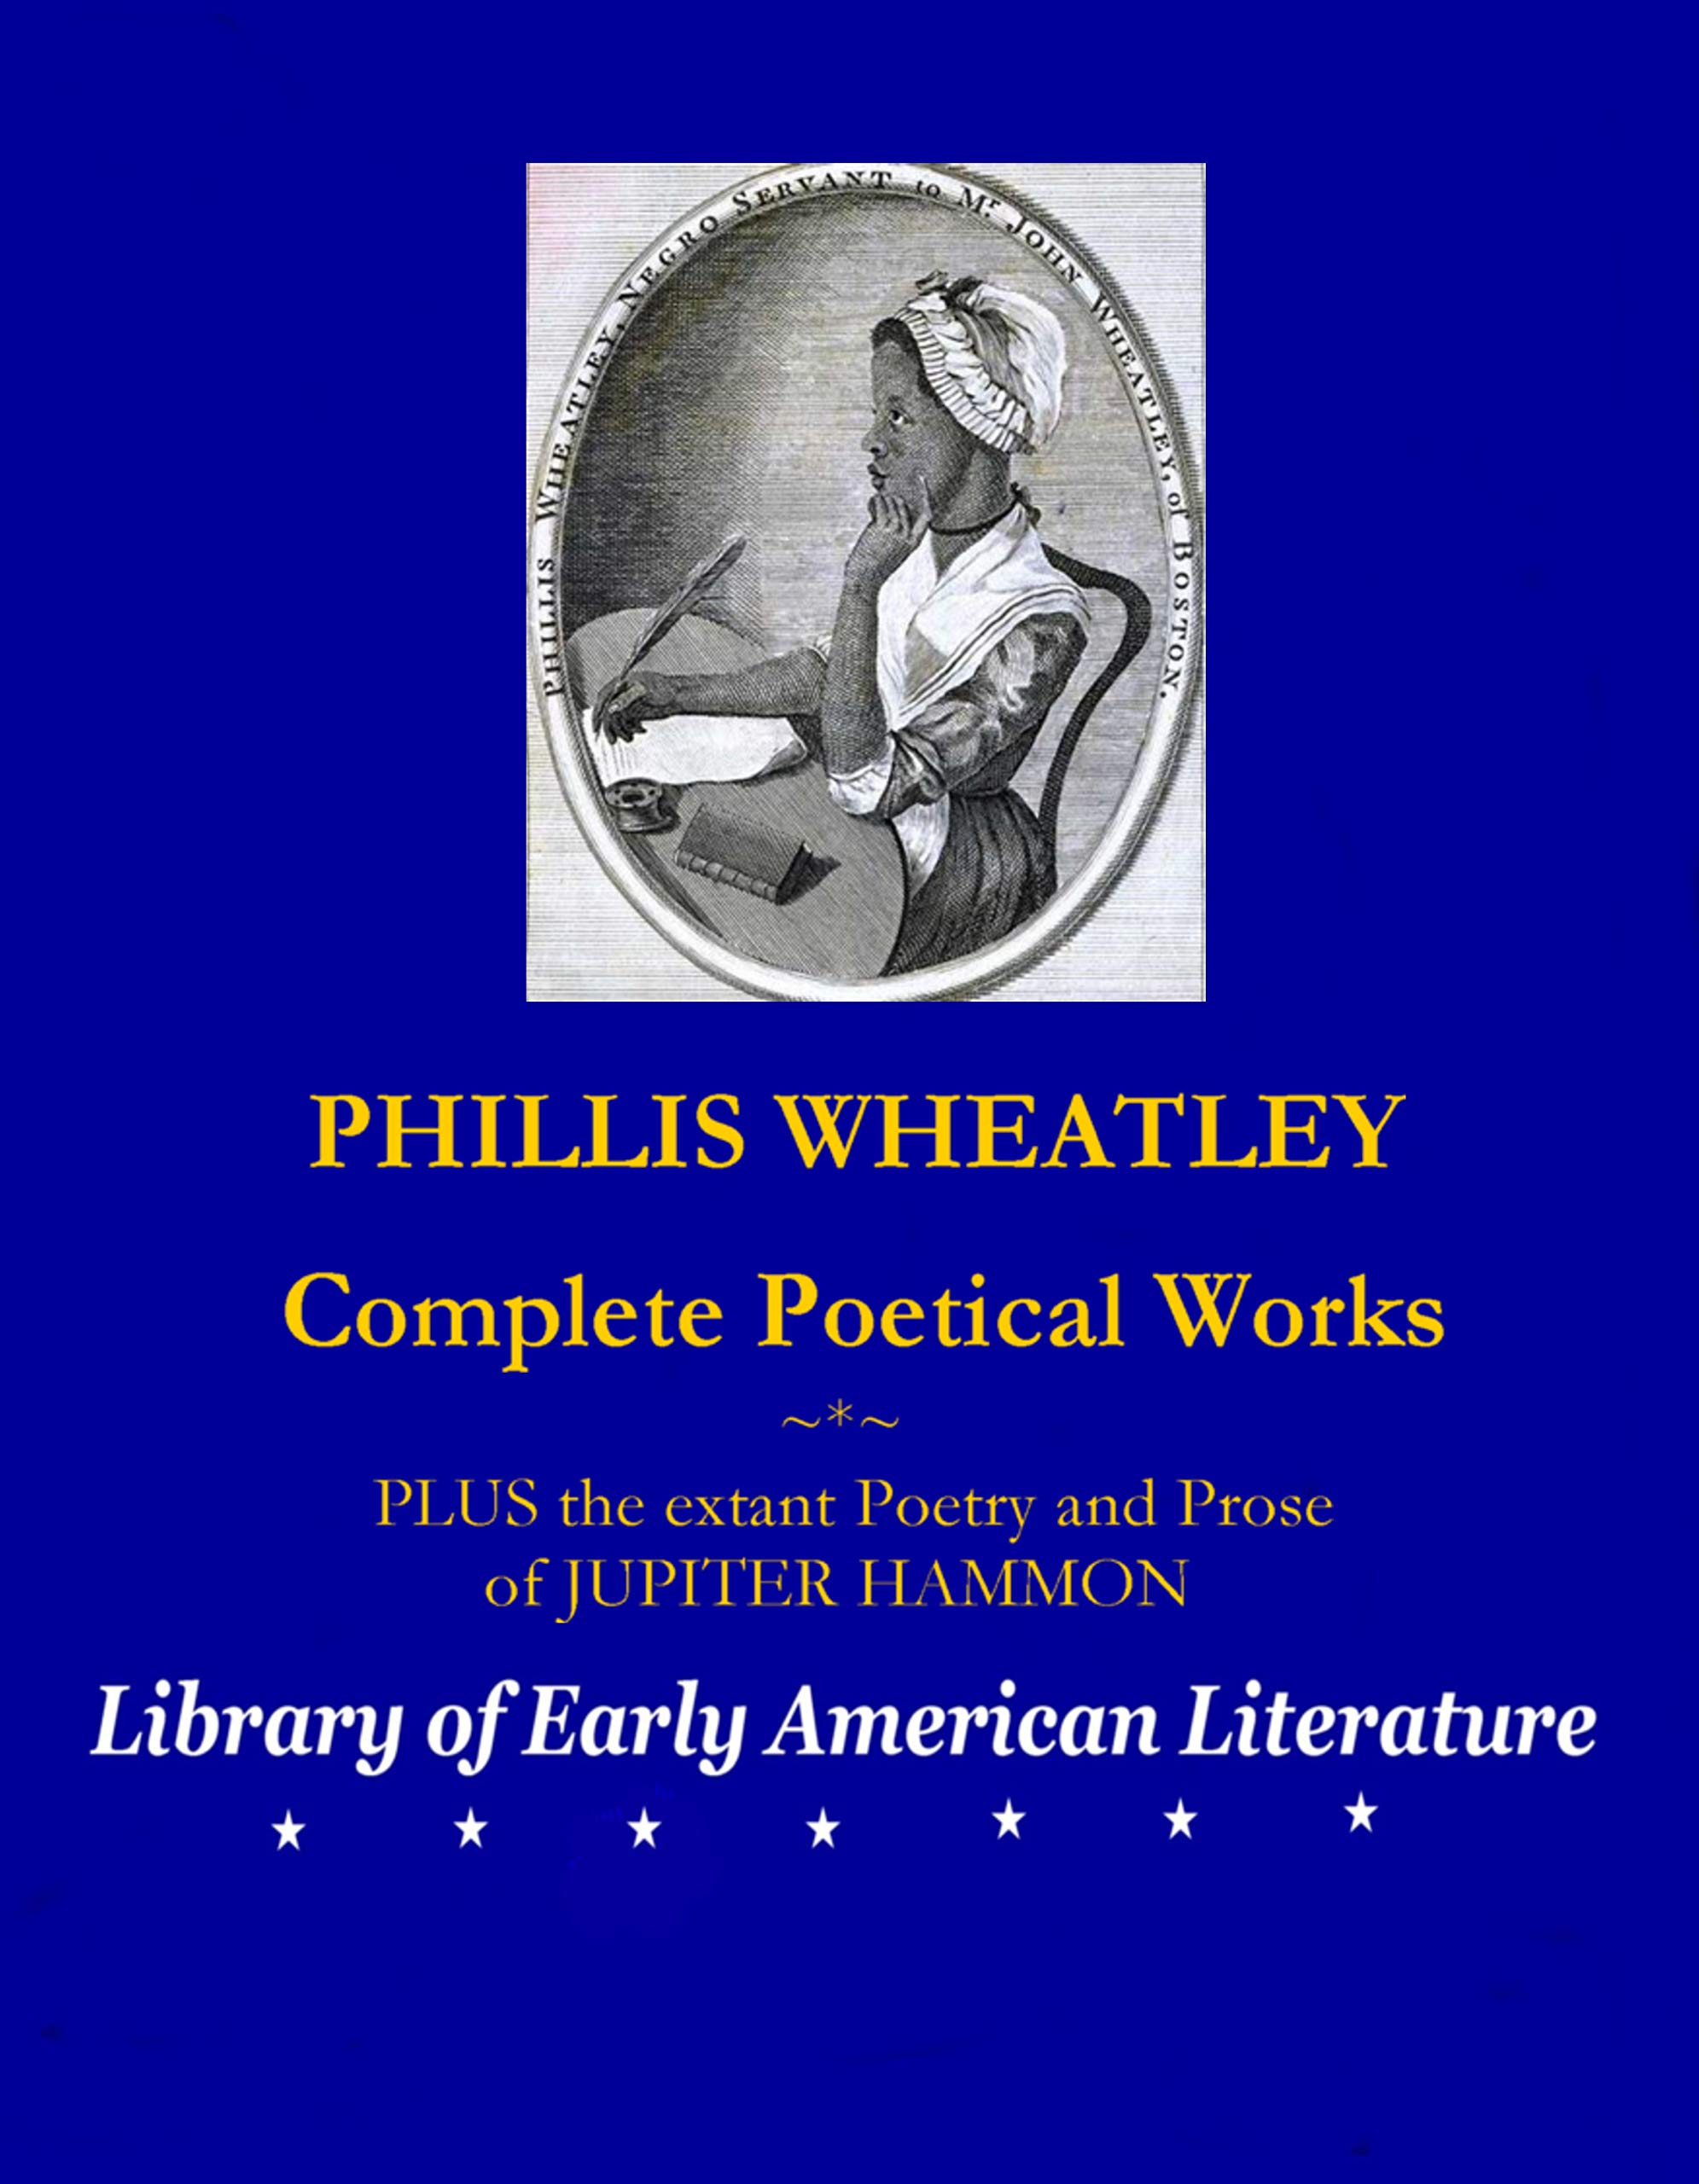 PHILLIS WHEATLEY: Complete Poetical Works (THE LIBRARY OF EARLY AMERICAN LITERATURE) Wheatley Phillis, Jupiter Hammon